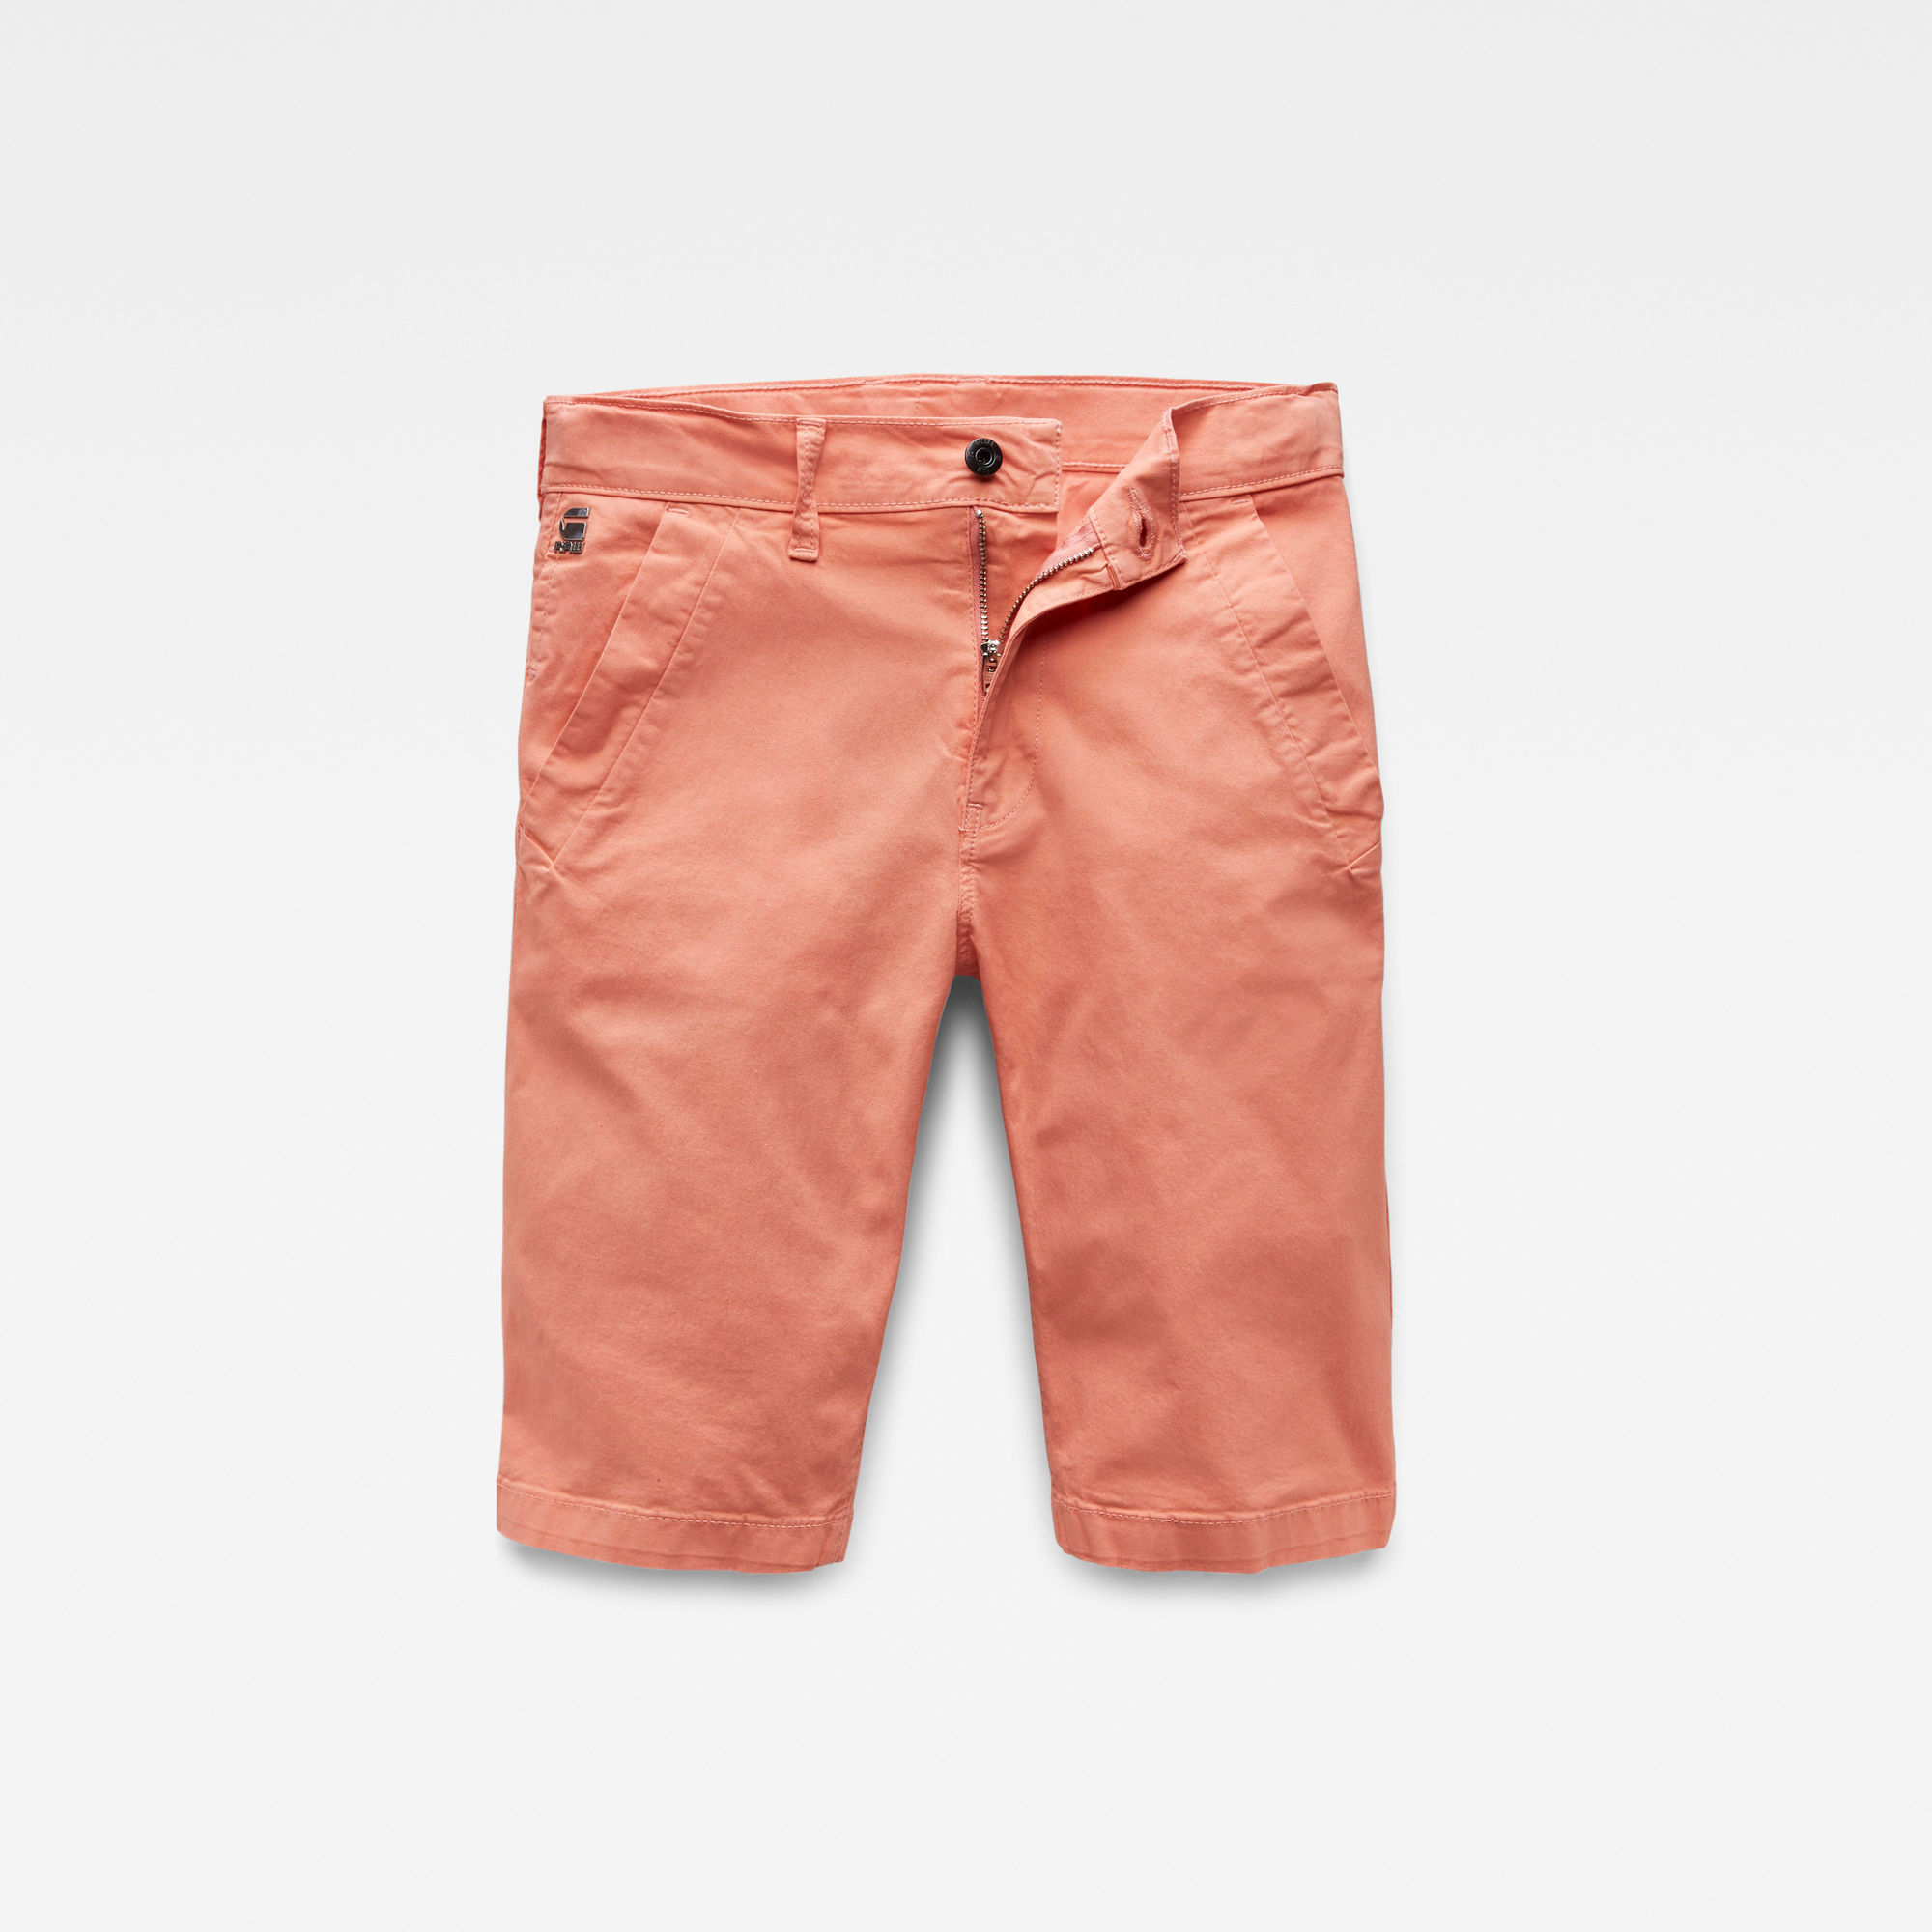 G-Star RAW Niño Shorts Bronson Slim